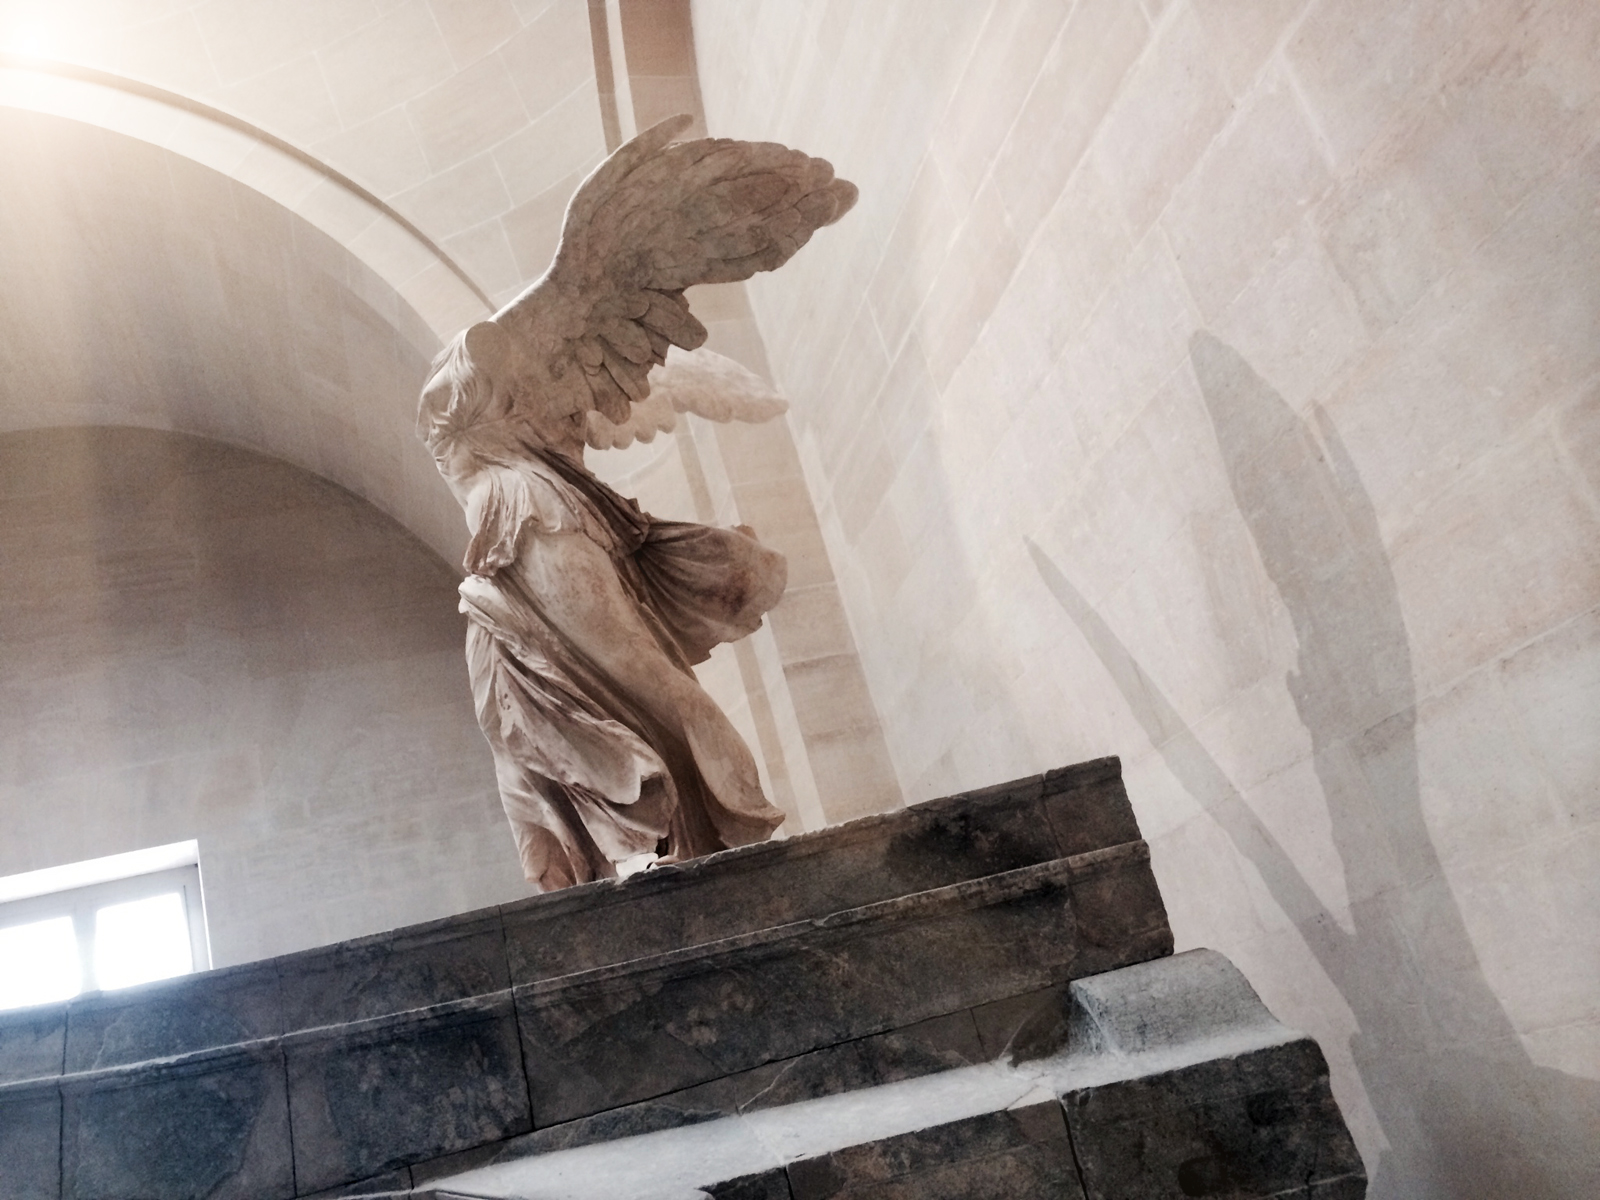 winged victory, the louvre, paris. august 2014. my view, for thirty glorious minutes.